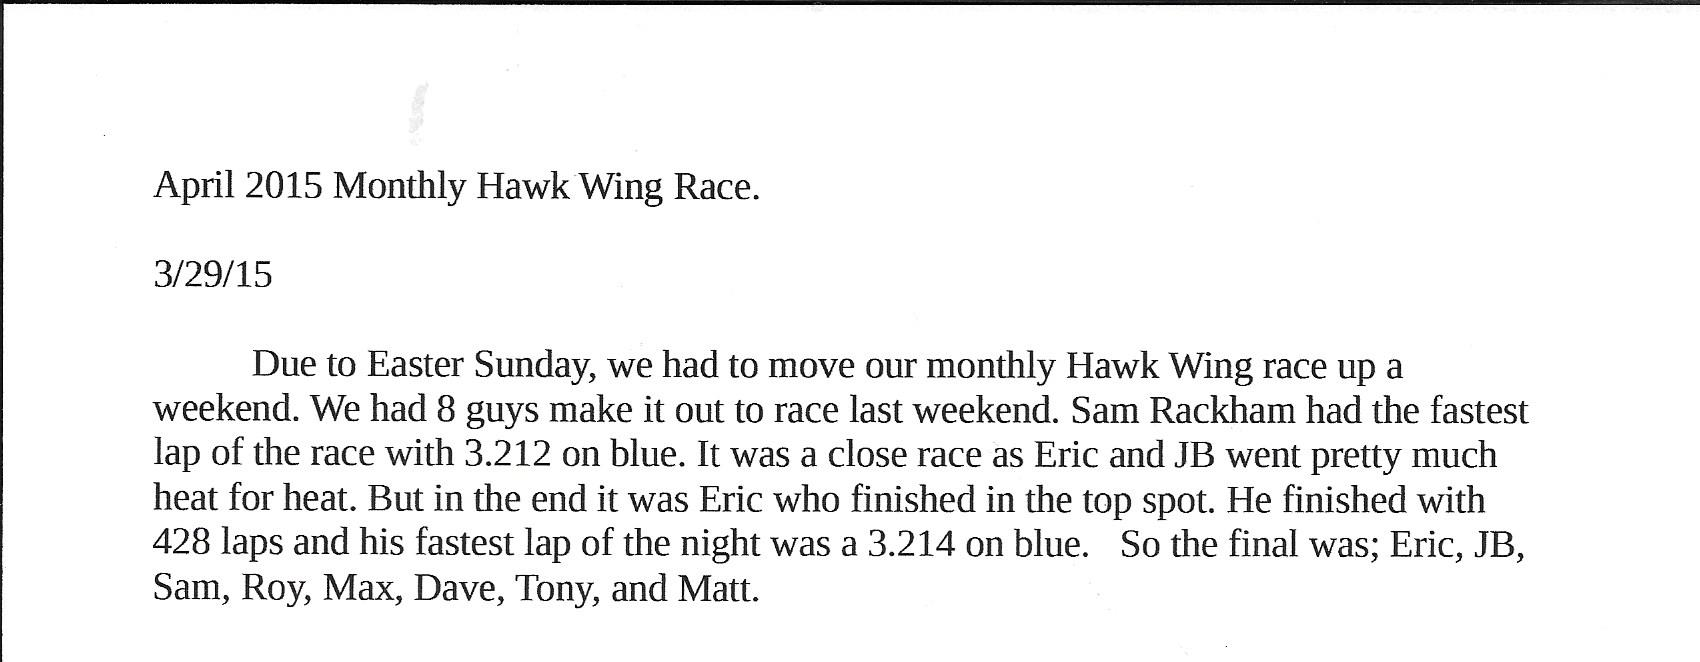 4115 wing race results reprint.jpg